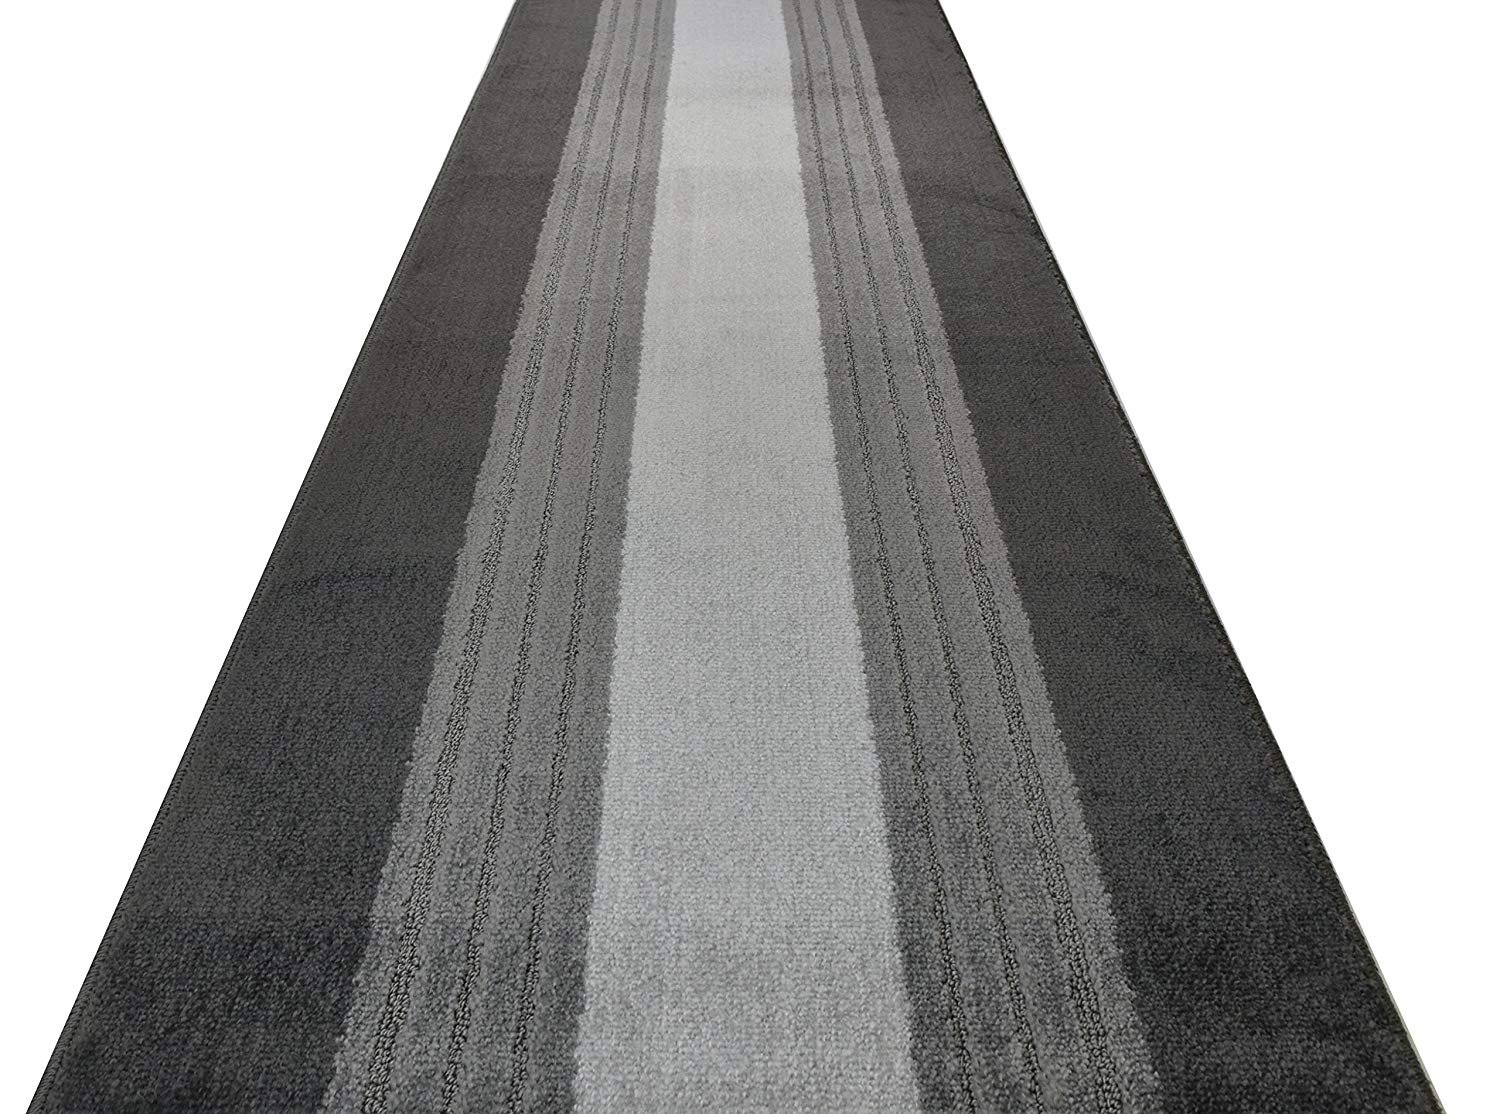 ORFA HOME Custom Cut Hallway Runner Rug, Slip Resistant, 31 Inch Wide X Your Choice of Length, Lines Anthracite, 31 Inch X 11 feet